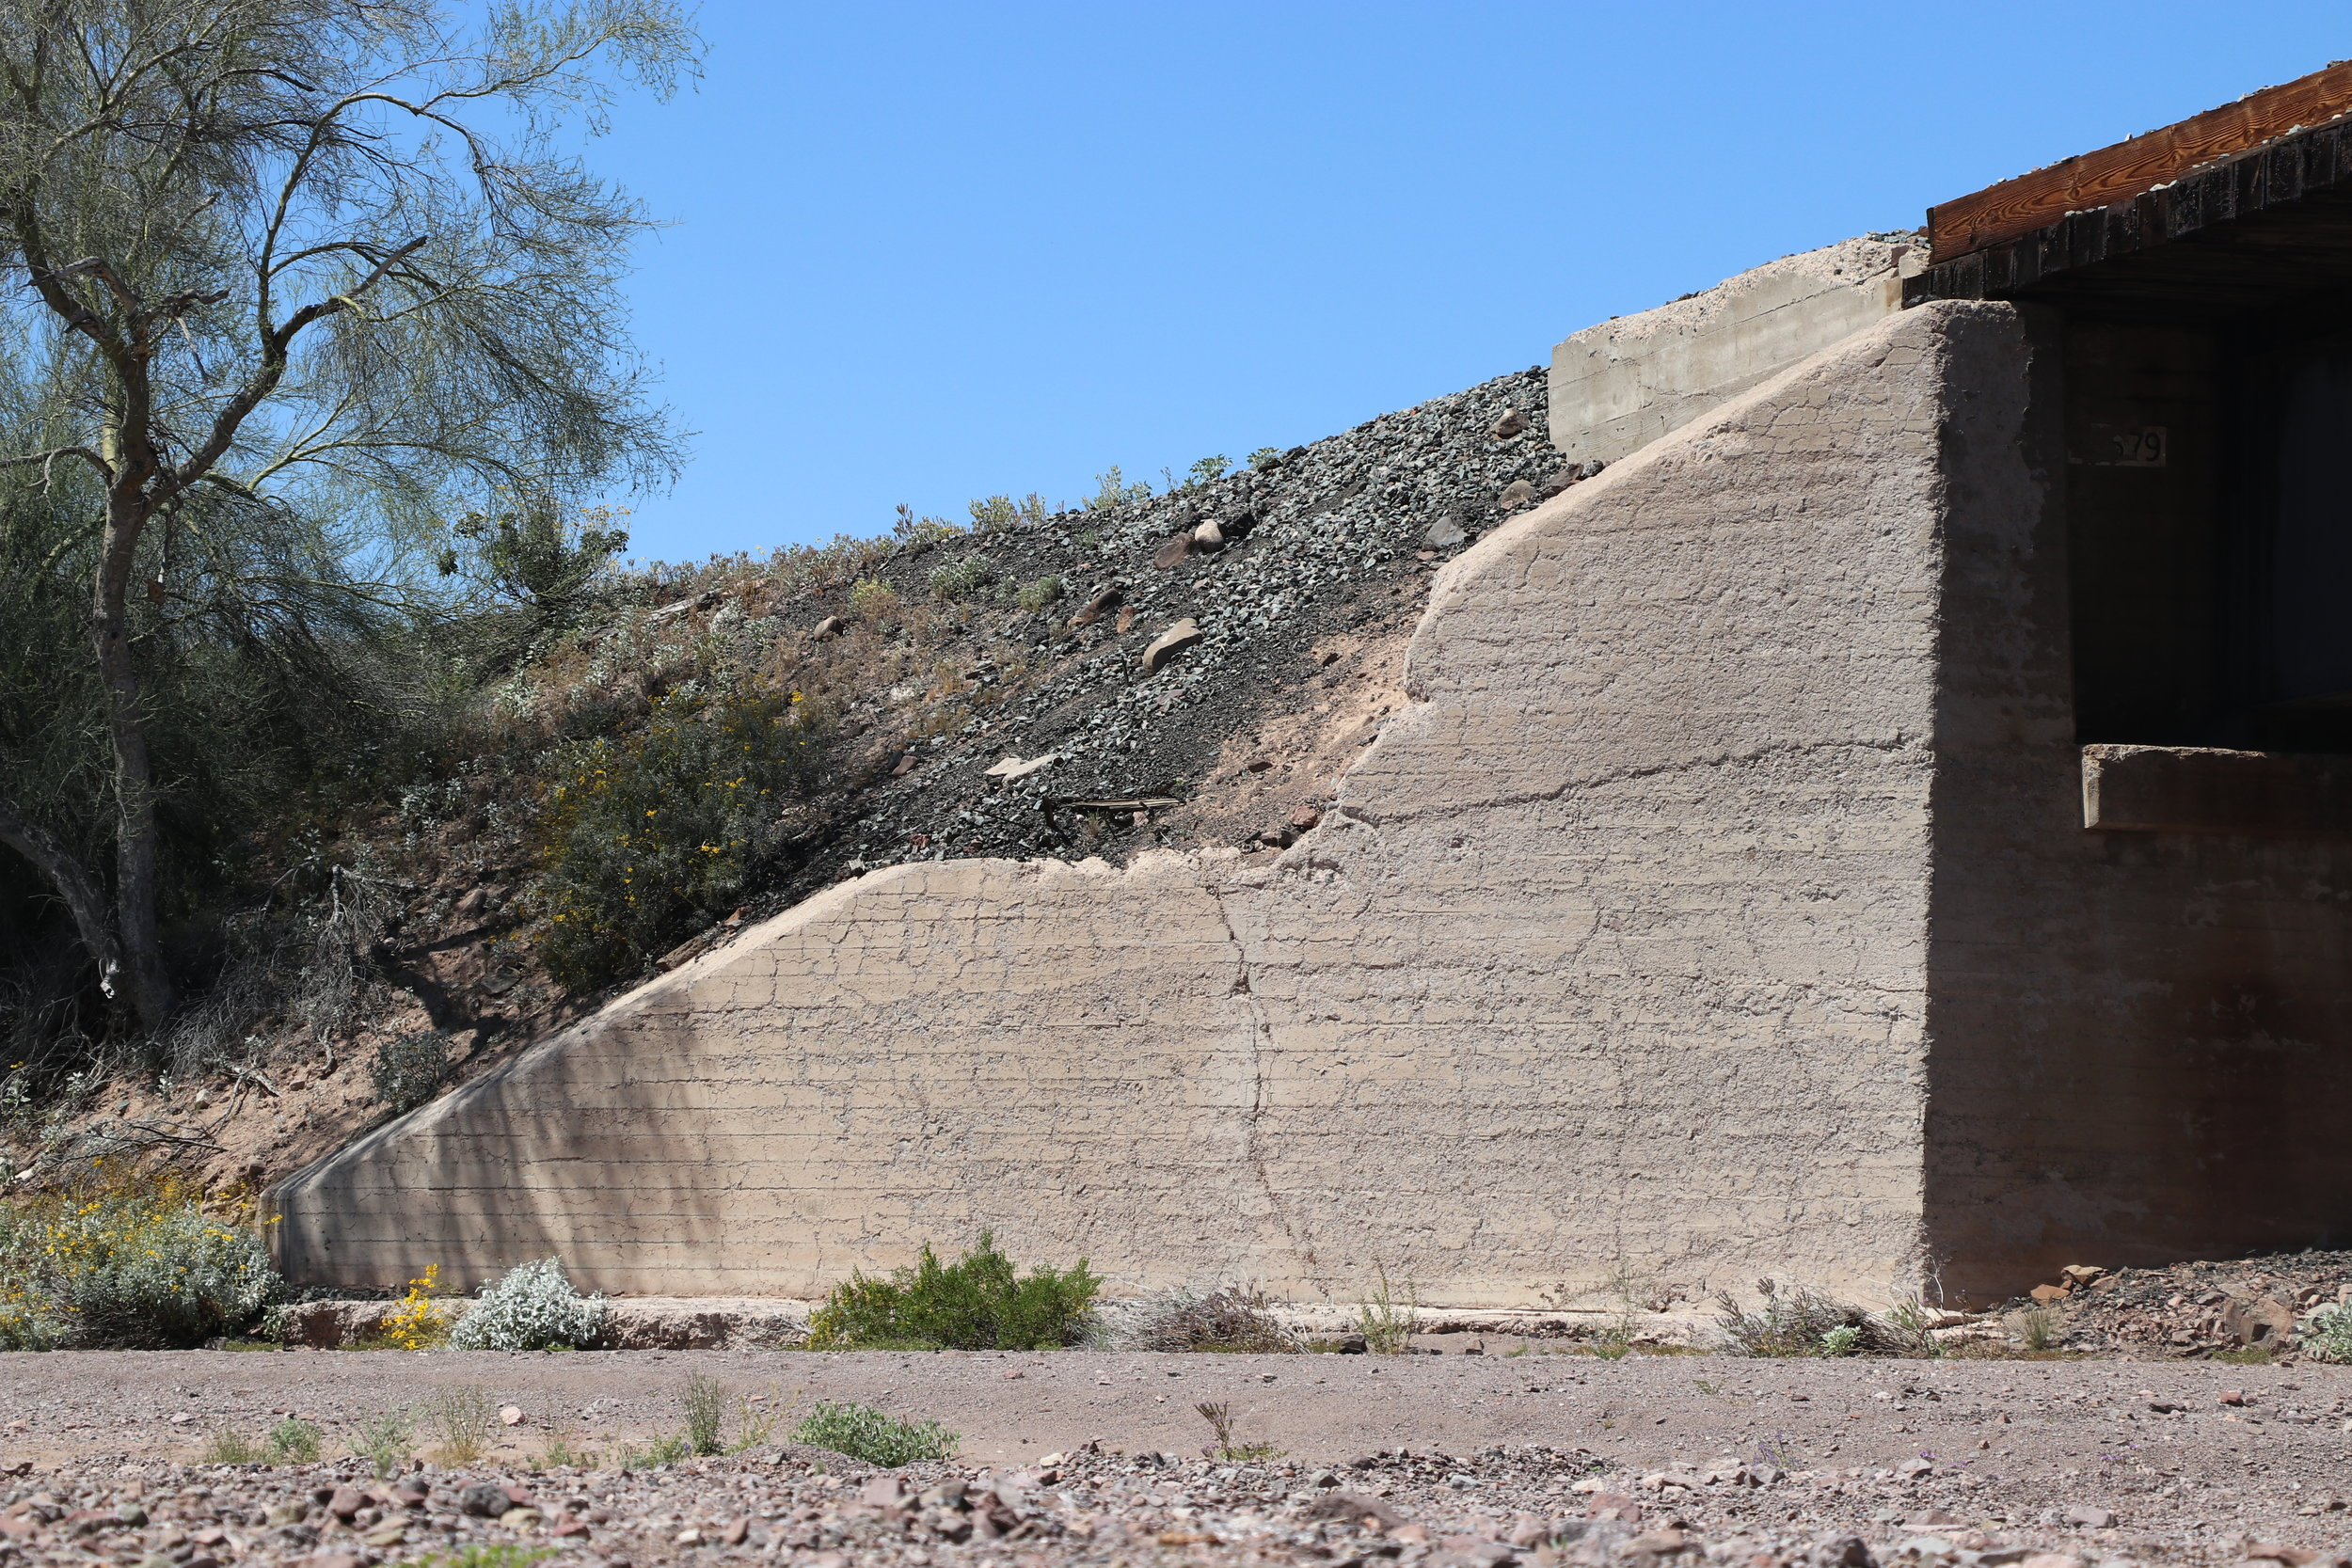 The damaged embankment on the west side of the wash.